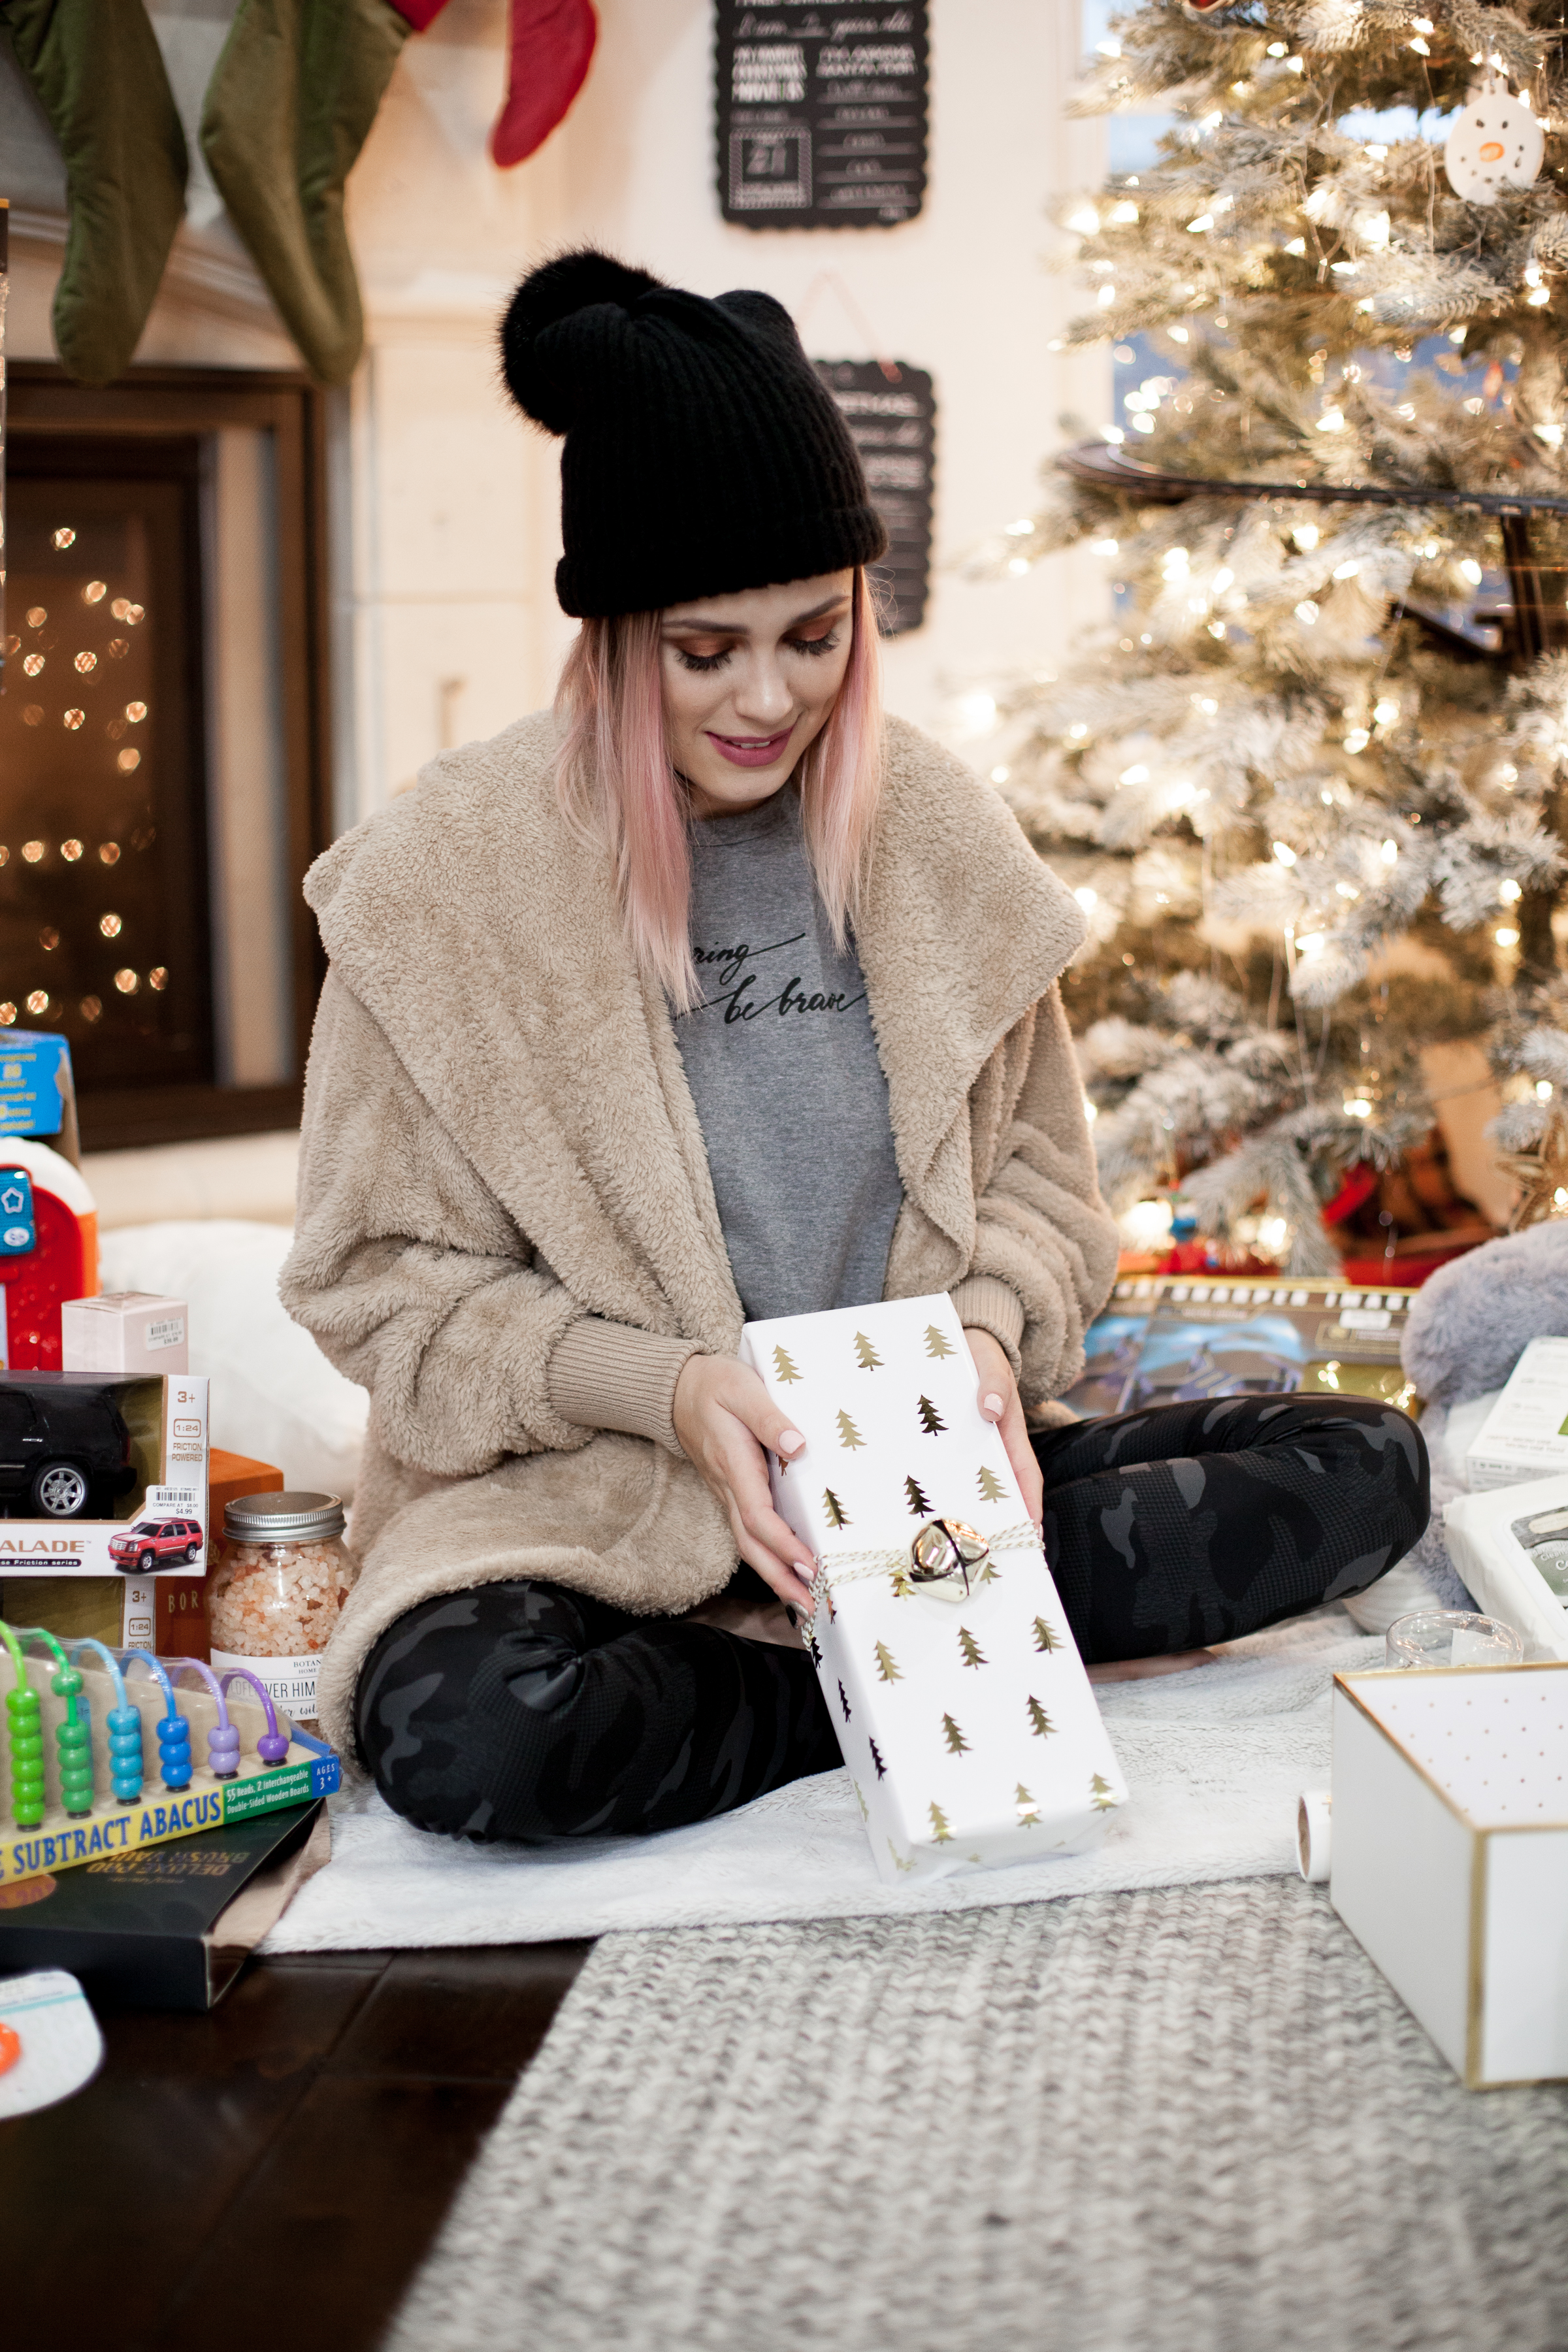 Houston Blogger Uptown with Elly Brown shares Christmas Gift Ideas and the where to get the perfect gift for everyone in the family. Click here for more!